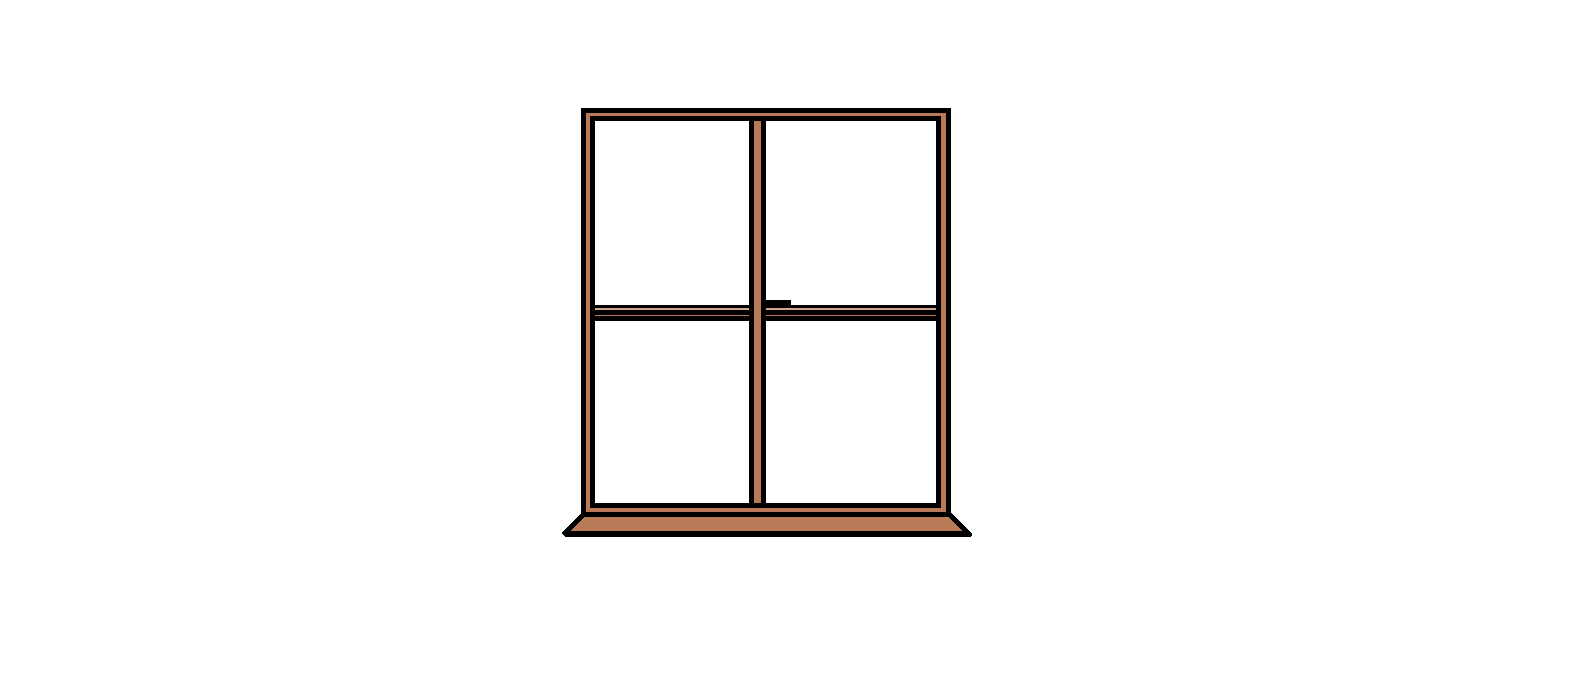 1594x691 Drawn Window Outline